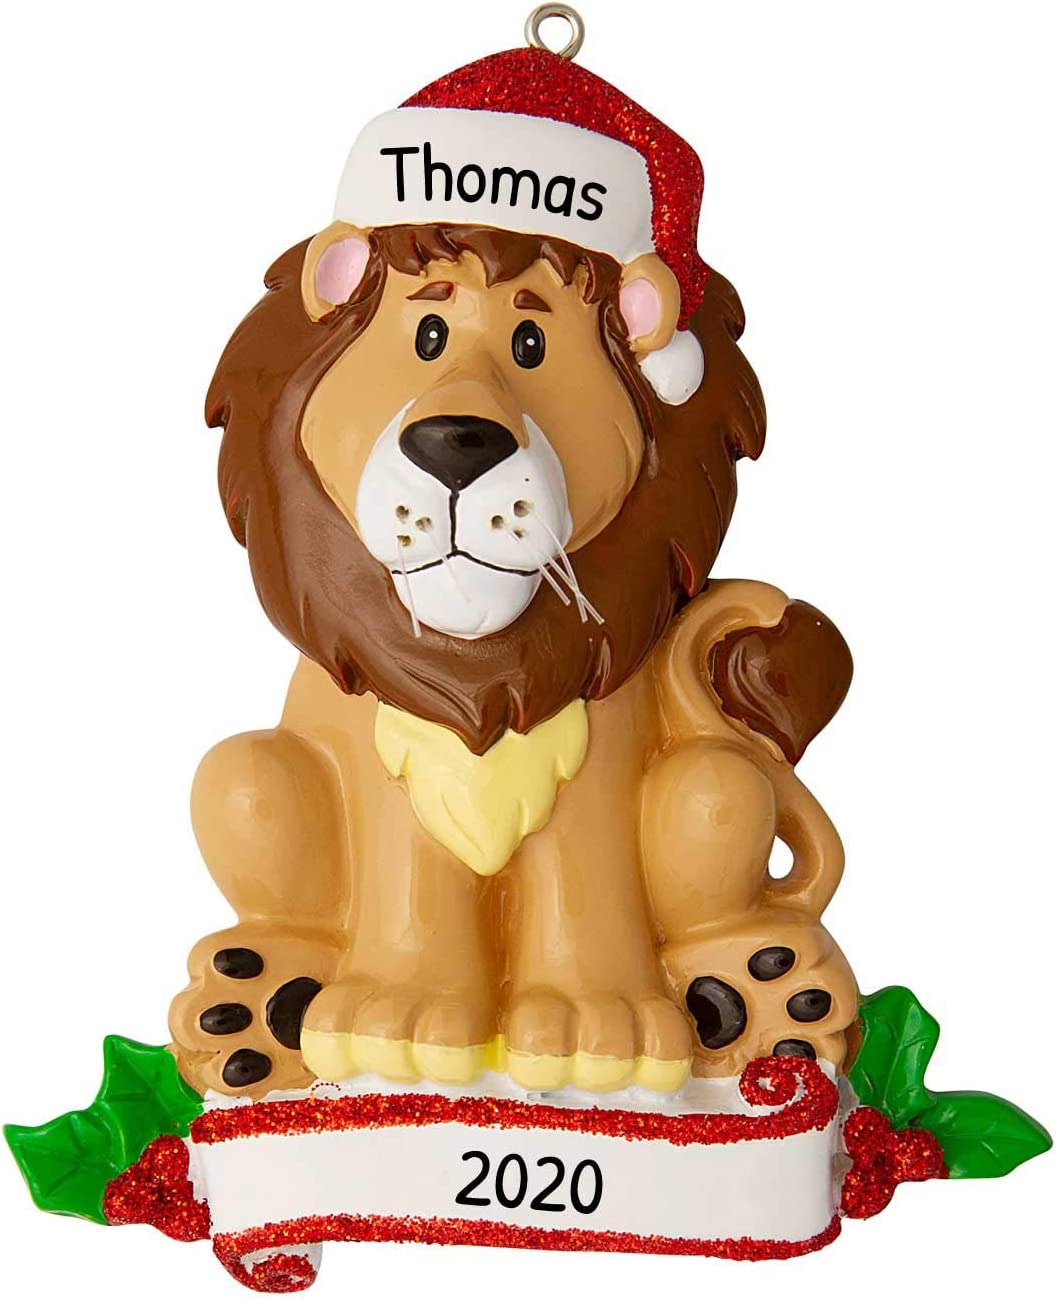 Cubs 2020 Christmas Ornament Amazon.com: Personalized Lion Zoo Animals Christmas Tree Ornament